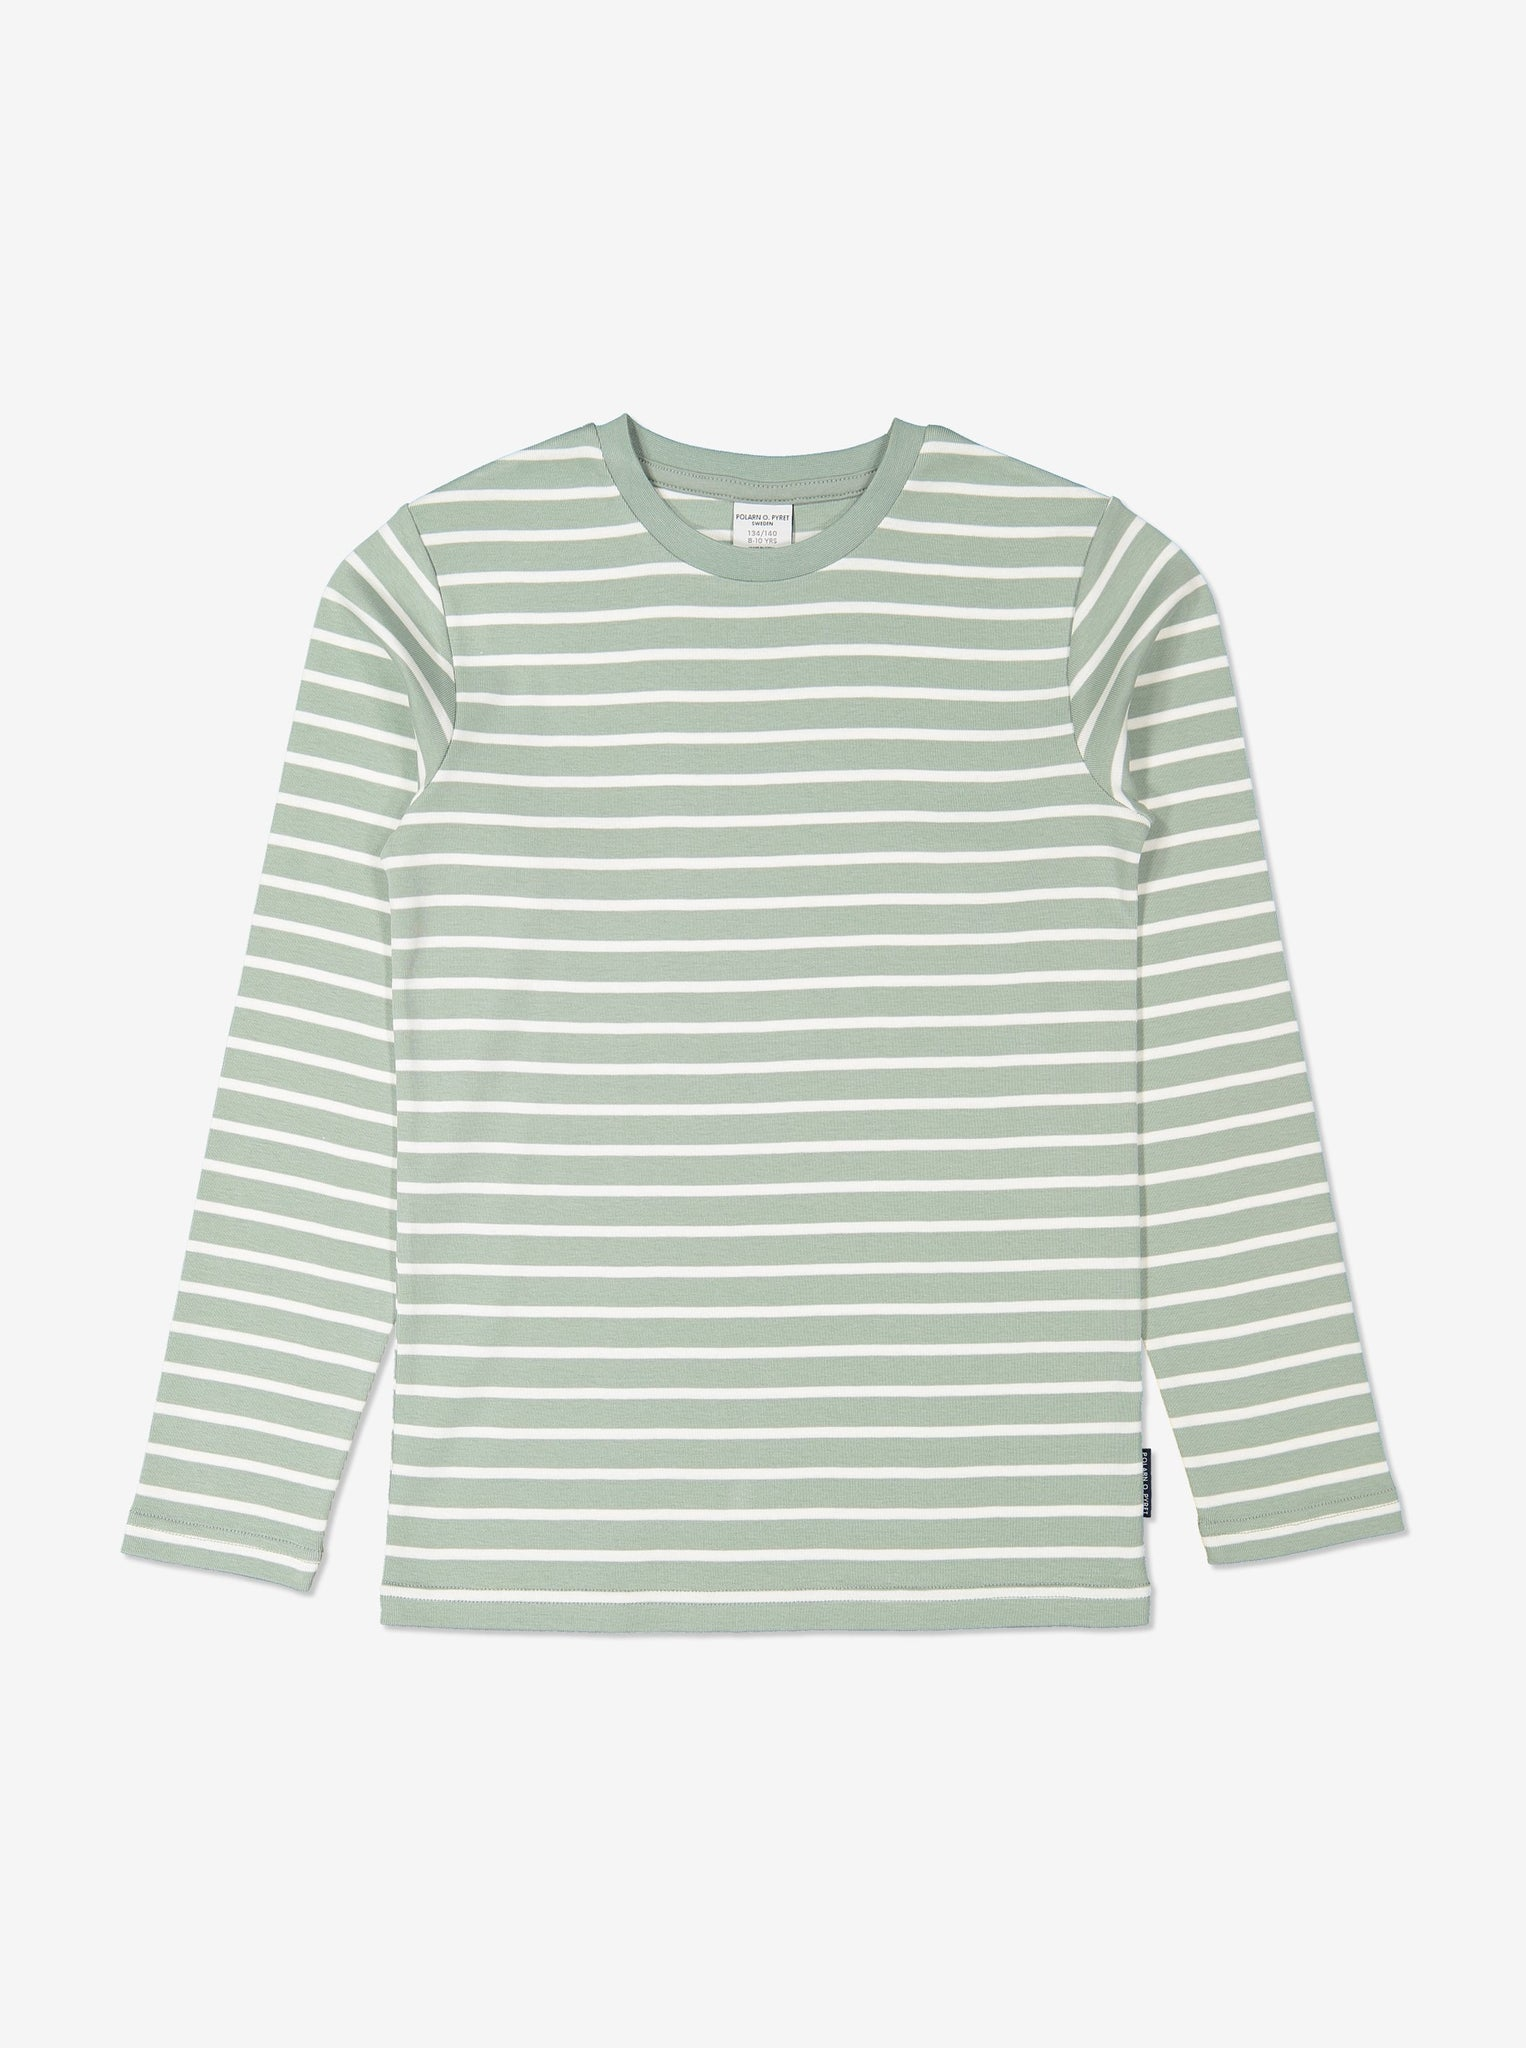 Kids Green Striped Organic Top